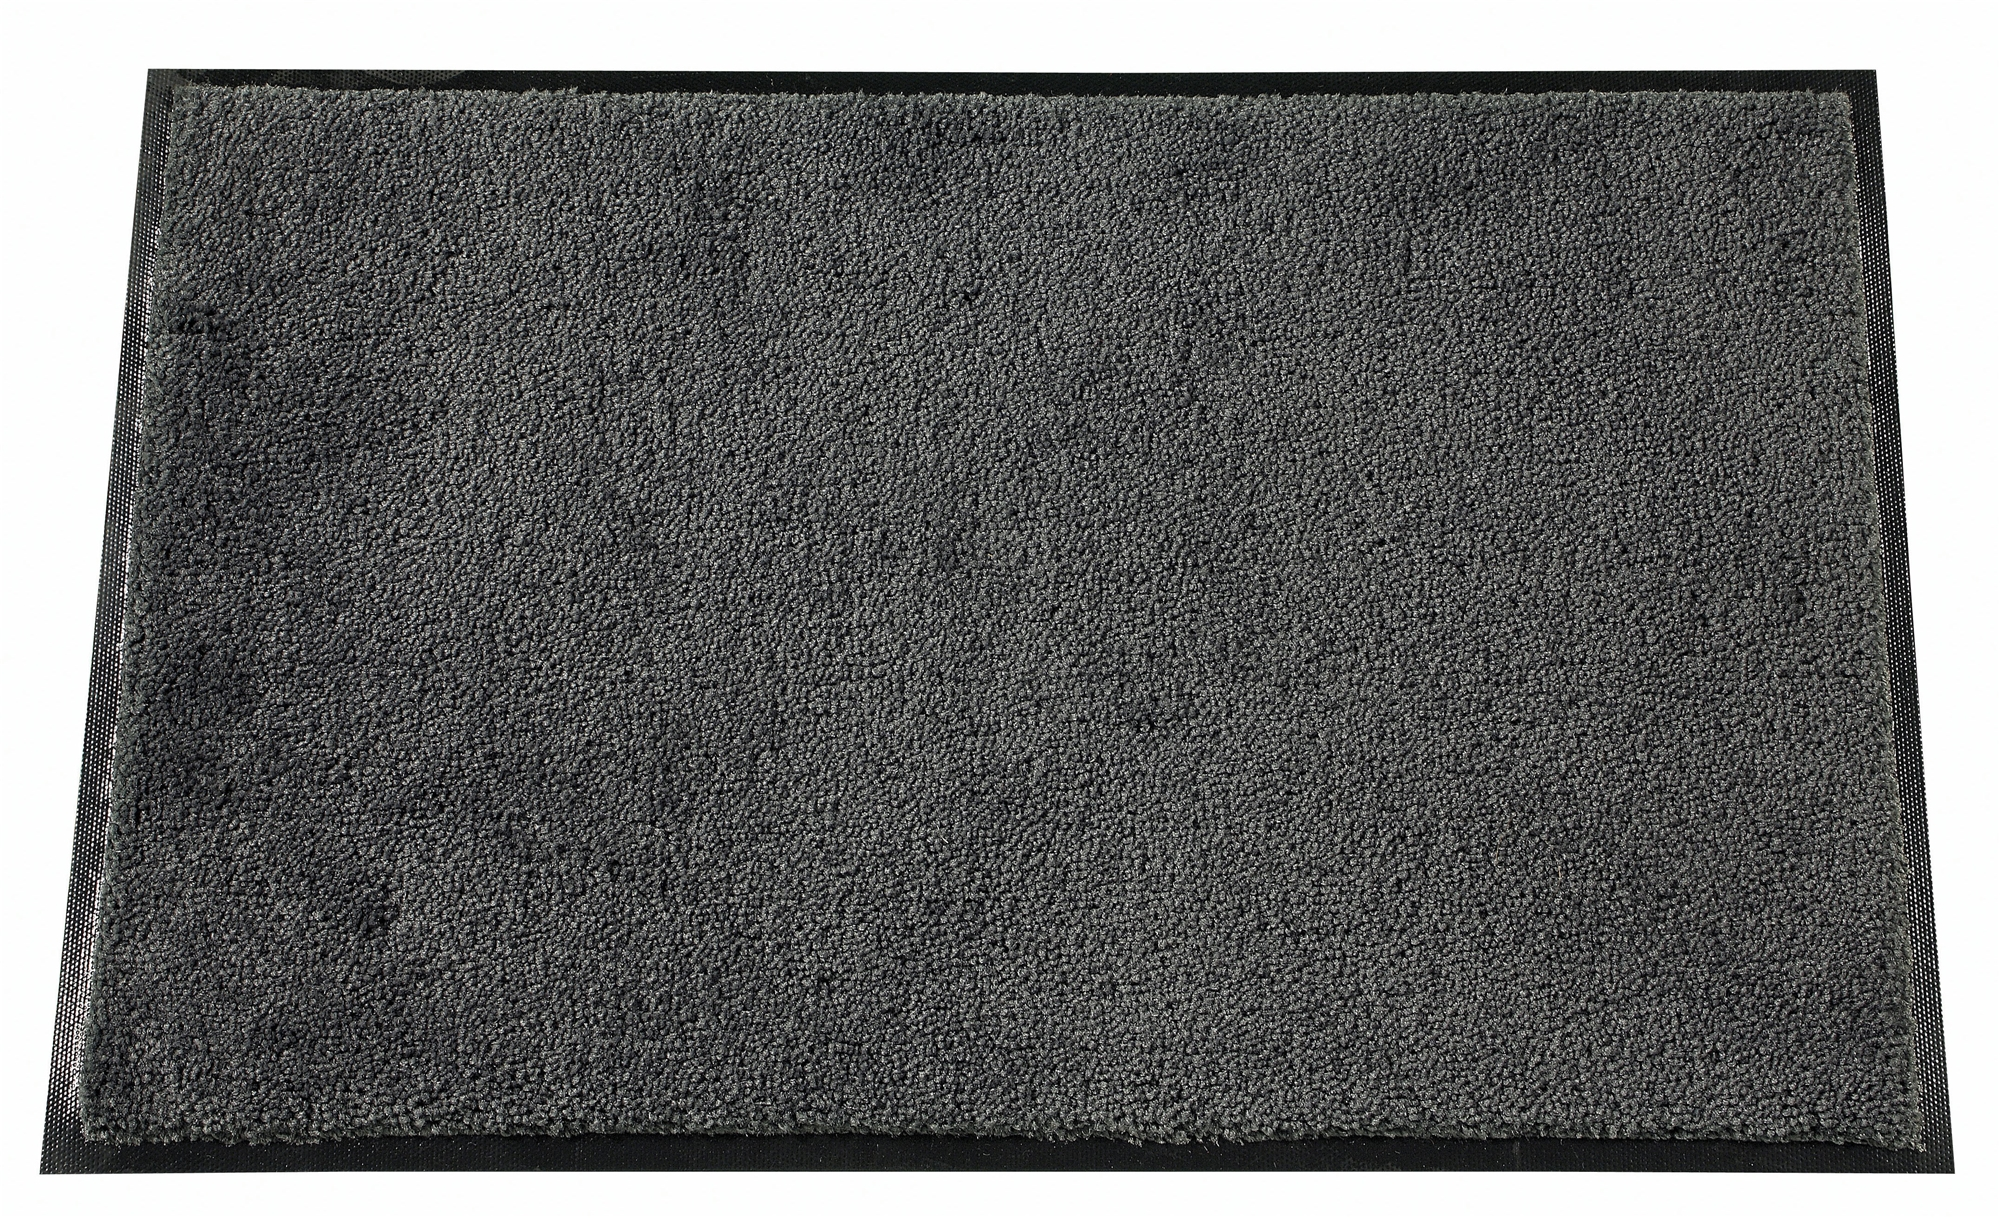 tapis int rieur plus de 1000 passages jour 90 x 140 cm gris. Black Bedroom Furniture Sets. Home Design Ideas